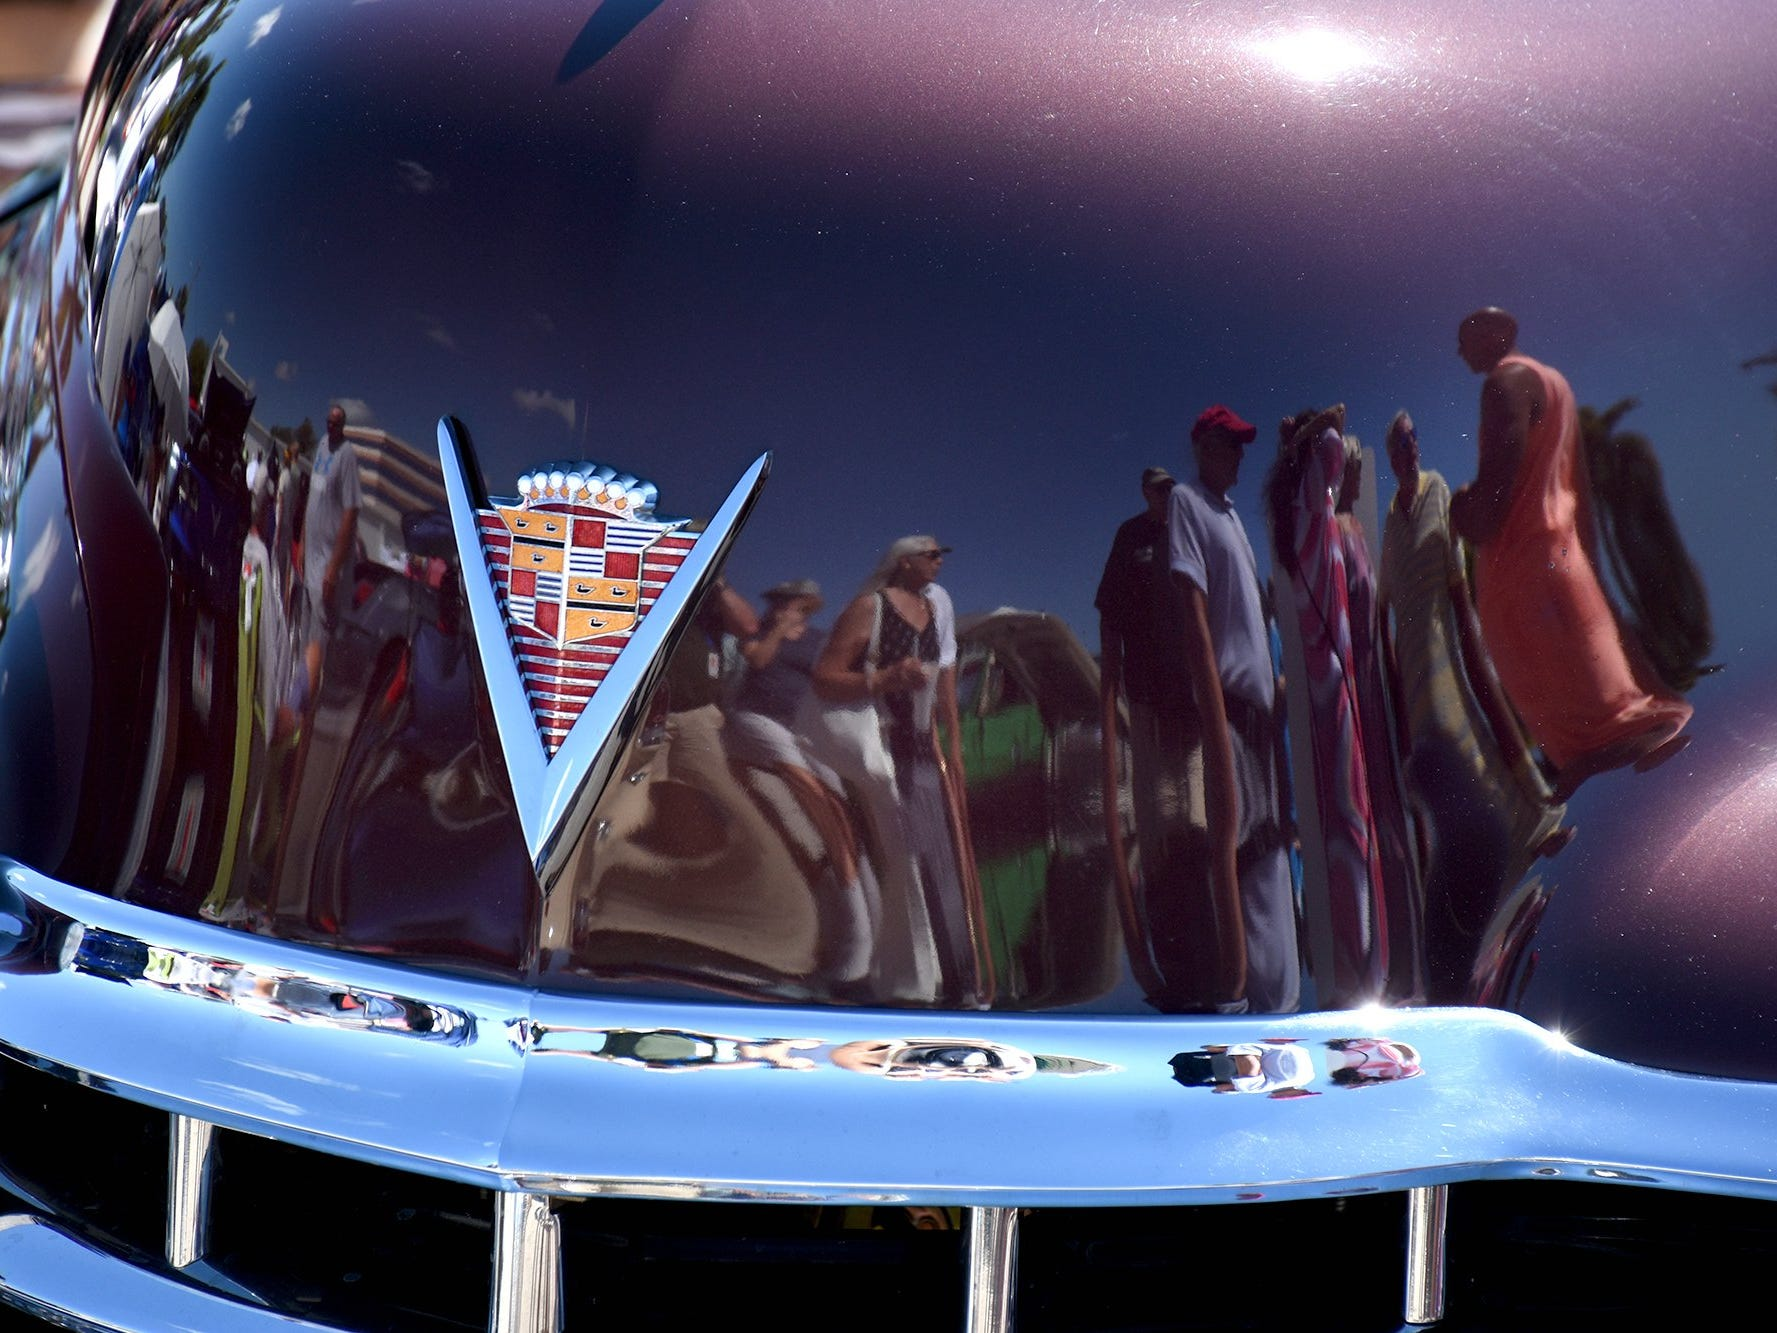 Spectators are reflected in John Yurconic's 1947 Cadillac. The annual Kiwanis car show brought 170 collectible cars and thousands of car enthusiasts to Veterans Community Park on Marco Island Sunday.